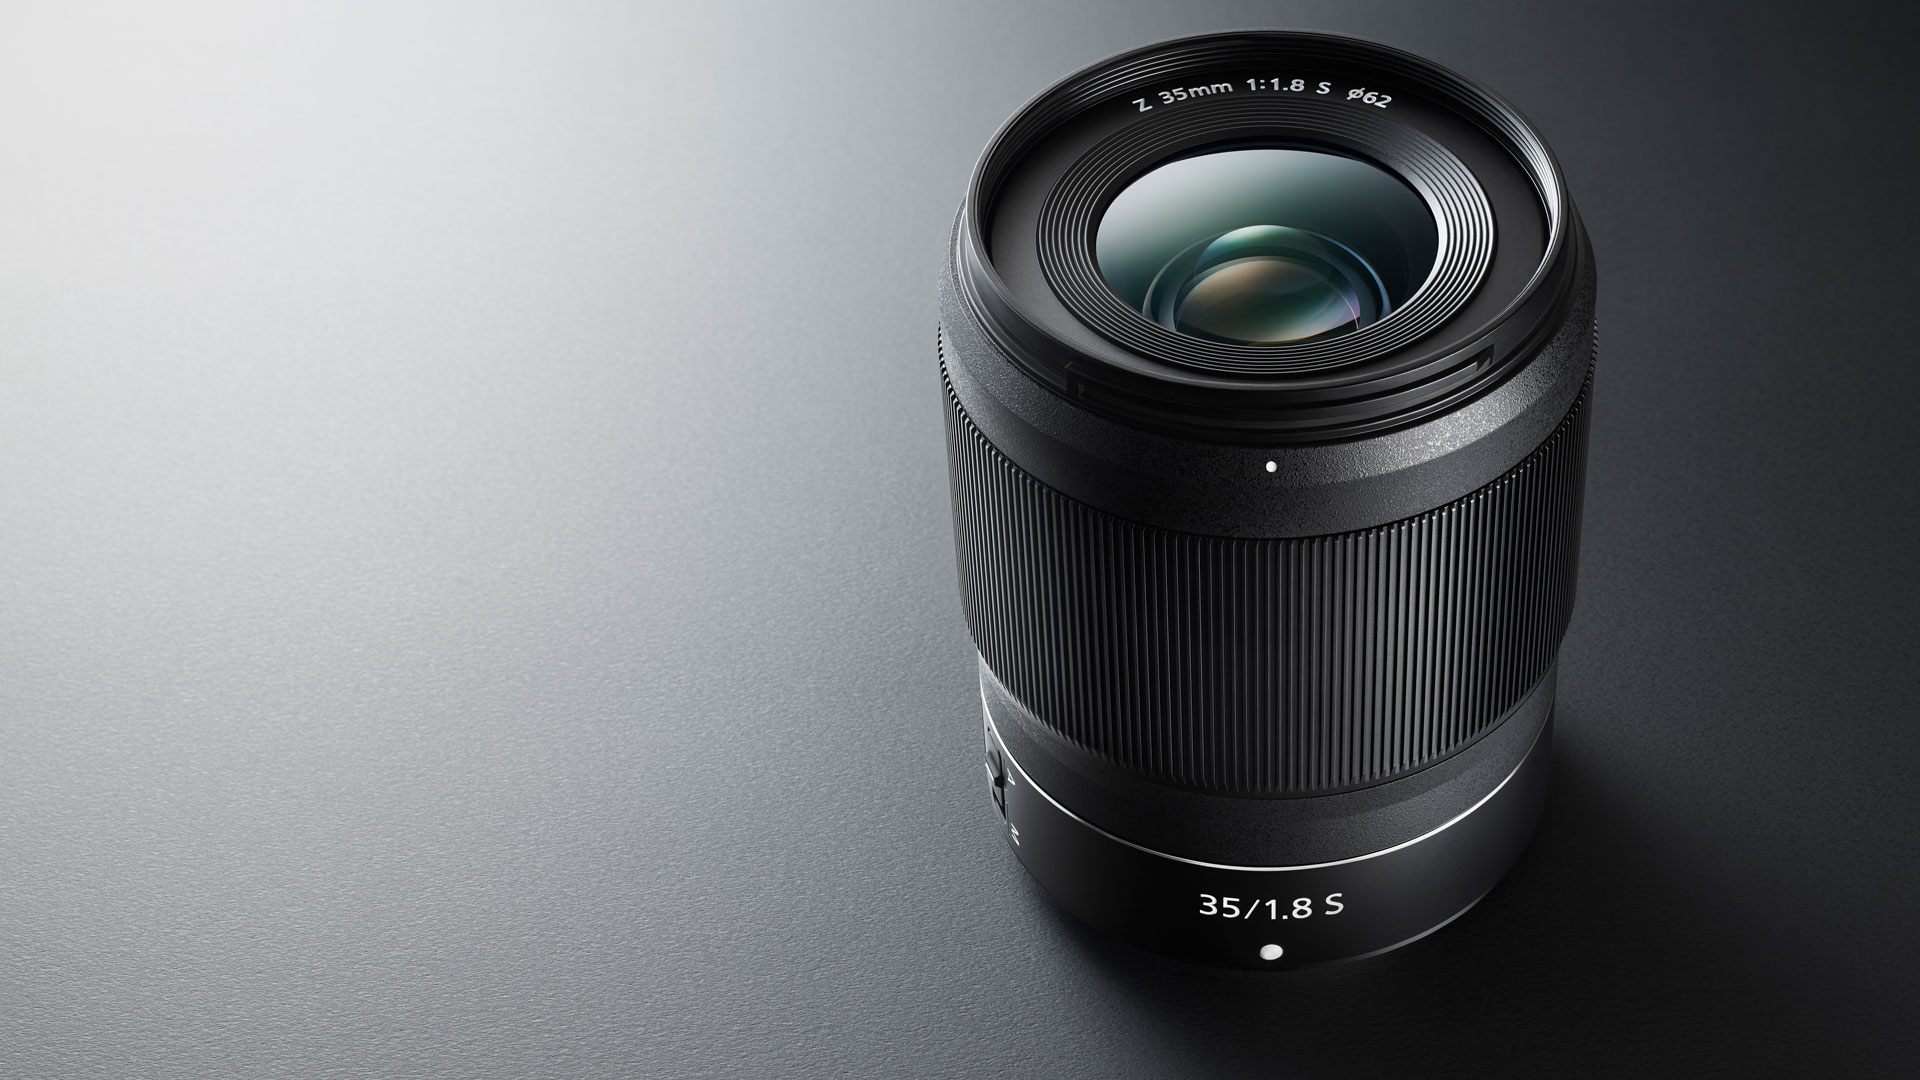 Nikkor Z 35mm f/1.8 S review